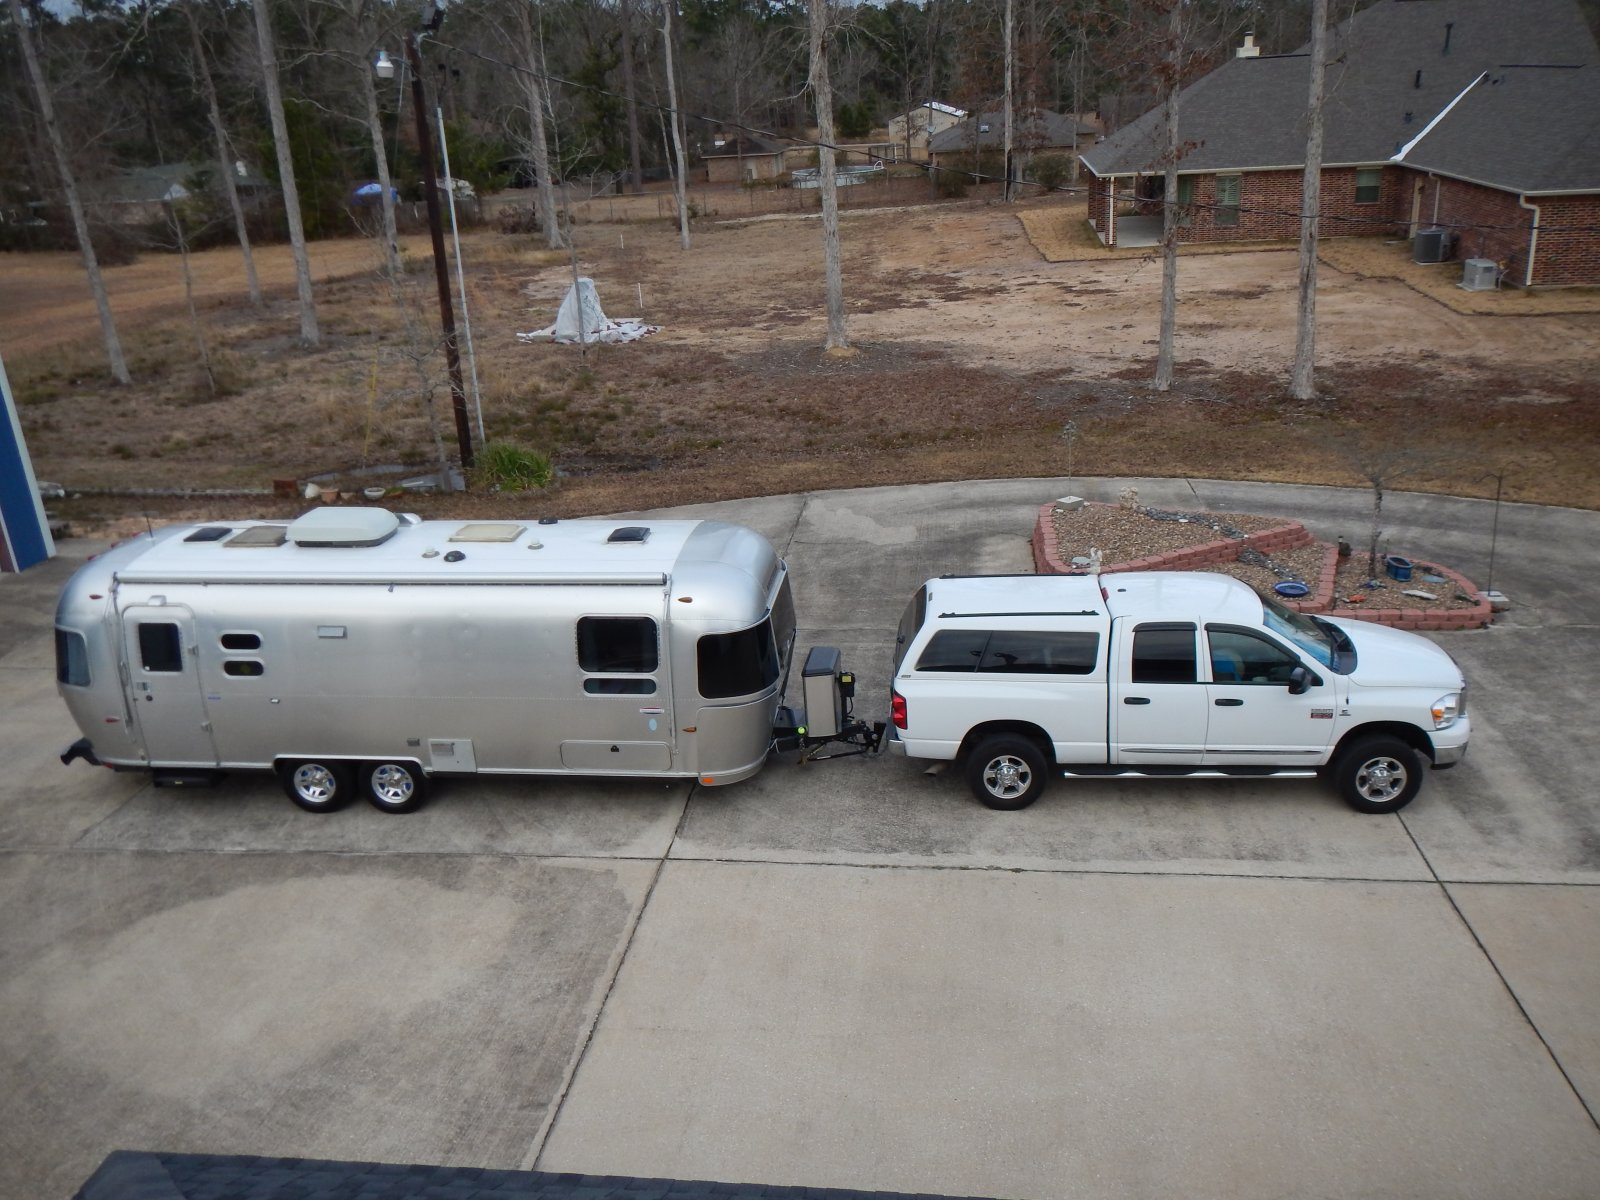 Click image for larger version  Name:Trailer Truck.jpg Views:106 Size:322.1 KB ID:230597